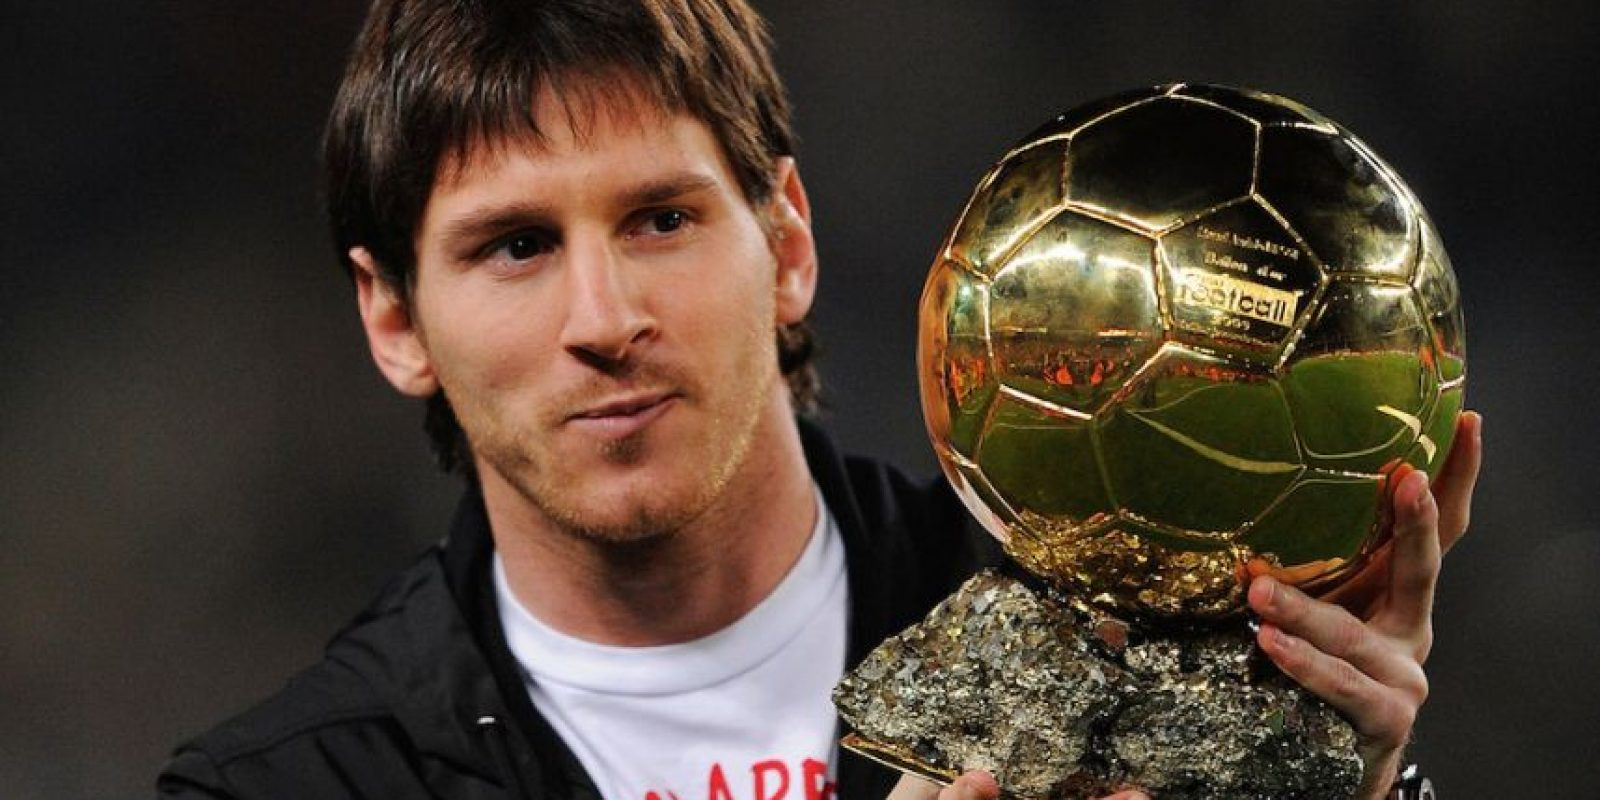 Messi con su balón de oro en 2009. Foto: Getty Images